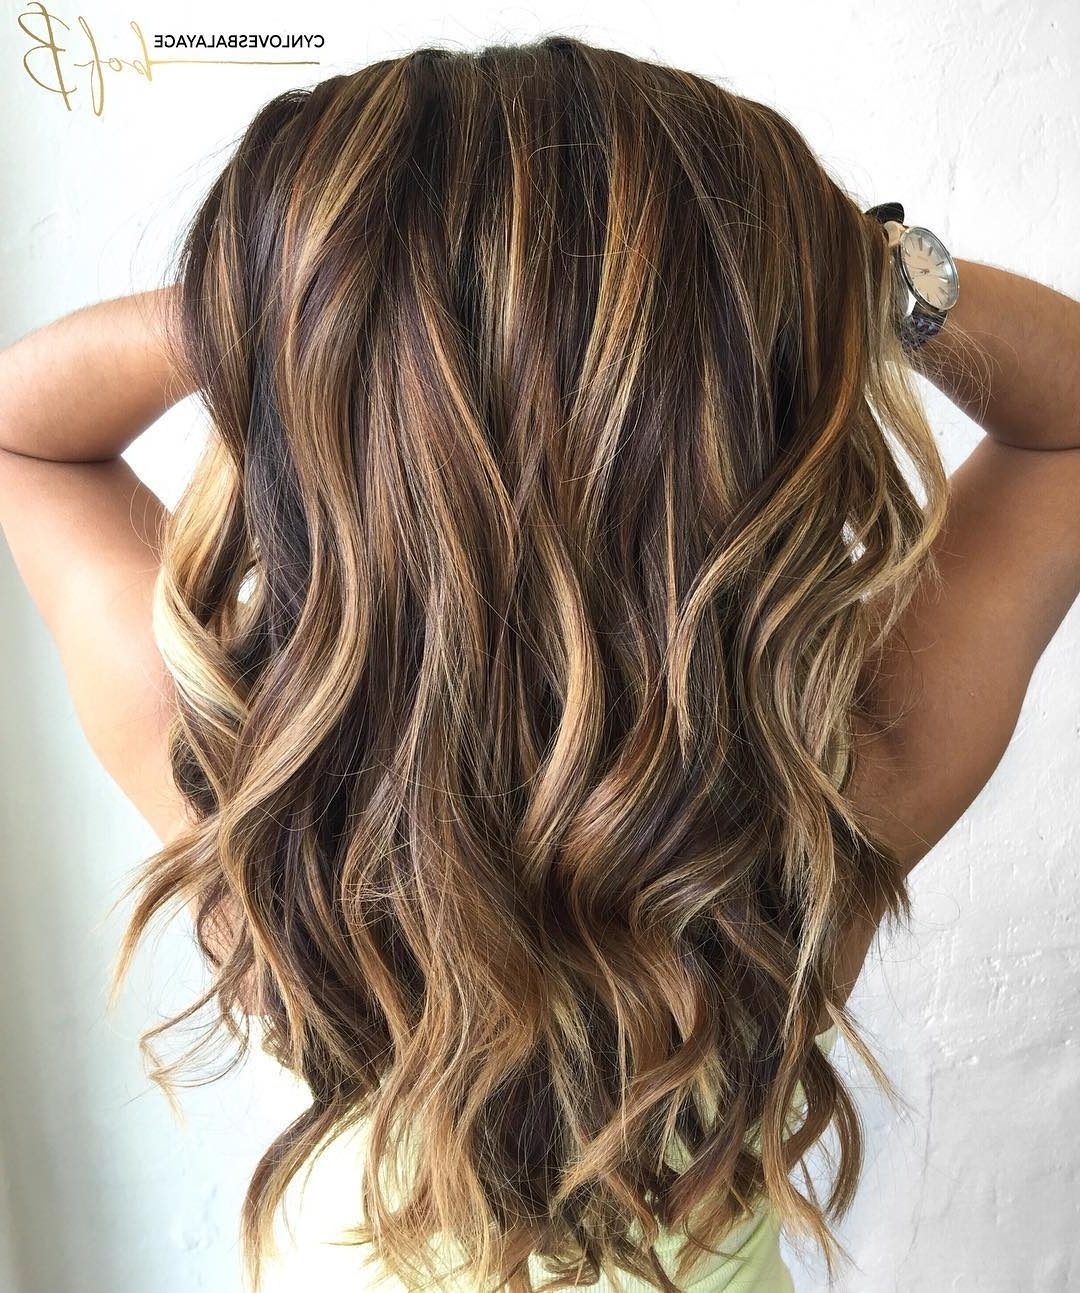 60 Looks With Caramel Highlights On Brown And Dark Brown Hair Pertaining To Best And Newest Sunkissed Long Locks Blonde Hairstyles (View 2 of 20)